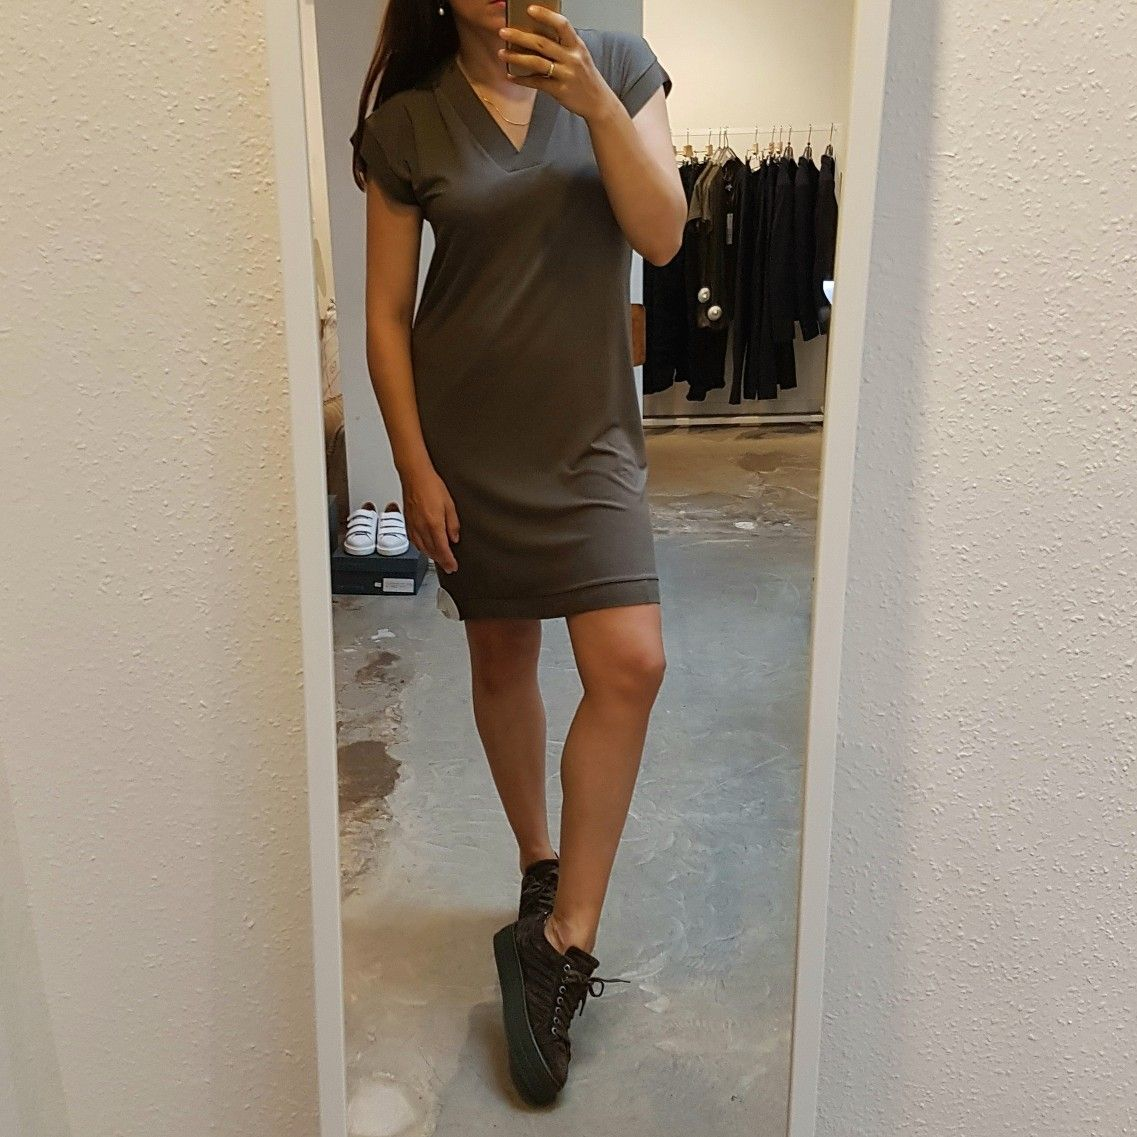 YaYa Loose-Fitting V-neck Dress  Via Vai Gaber Elevation Sneakers   @ #Vollers386, #Oudegracht 386 in #Utrecht.